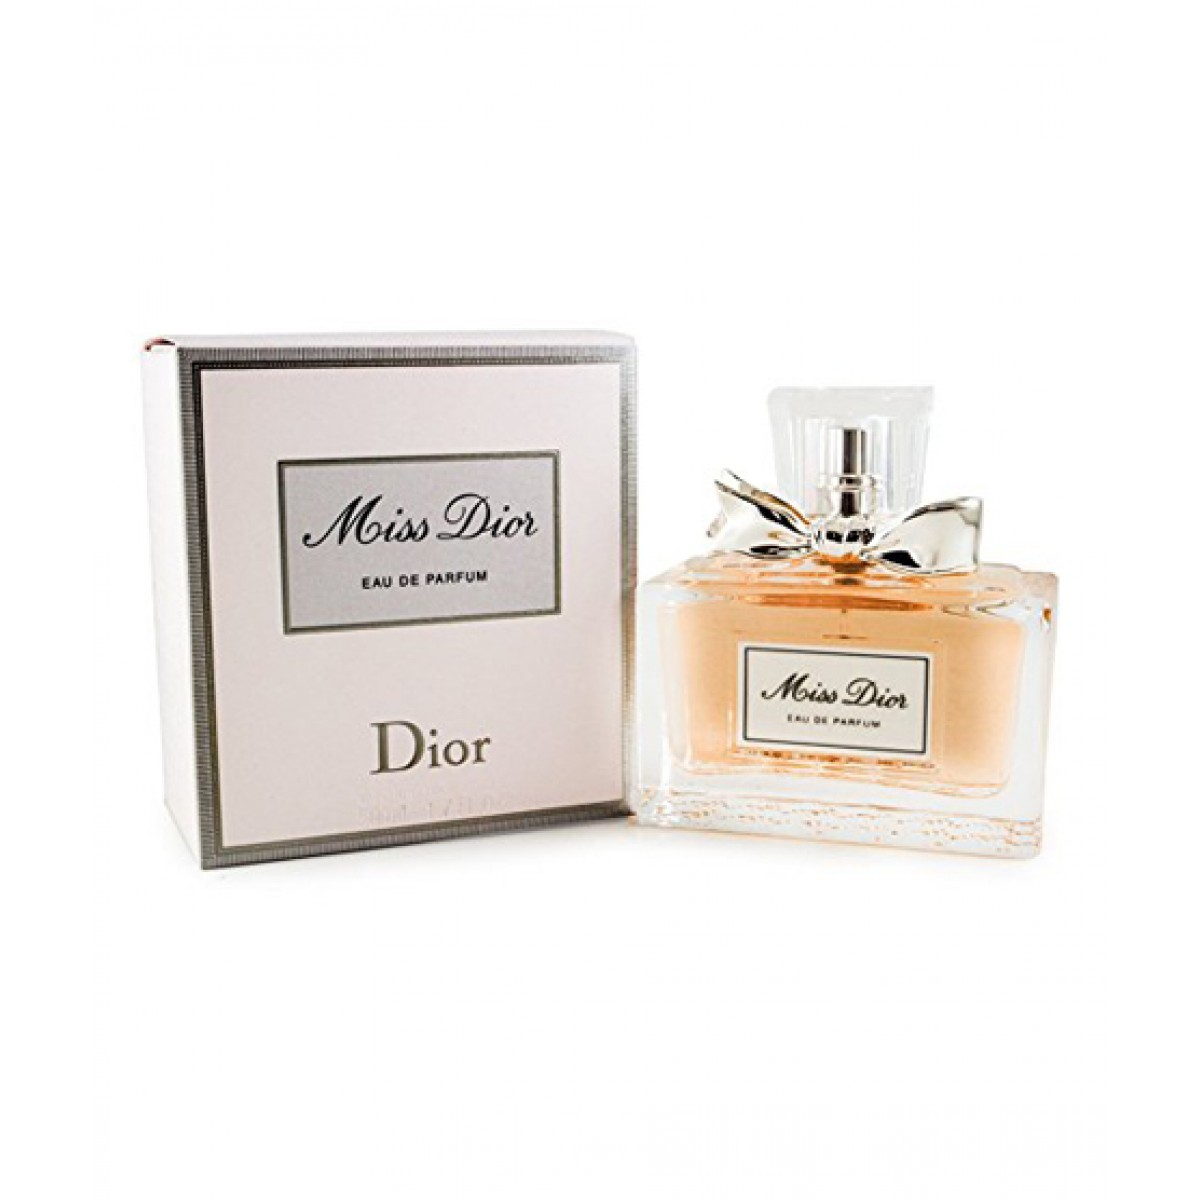 90ace86ab23 Christian Dior Eau De Parfum 50ml Price in Pakistan